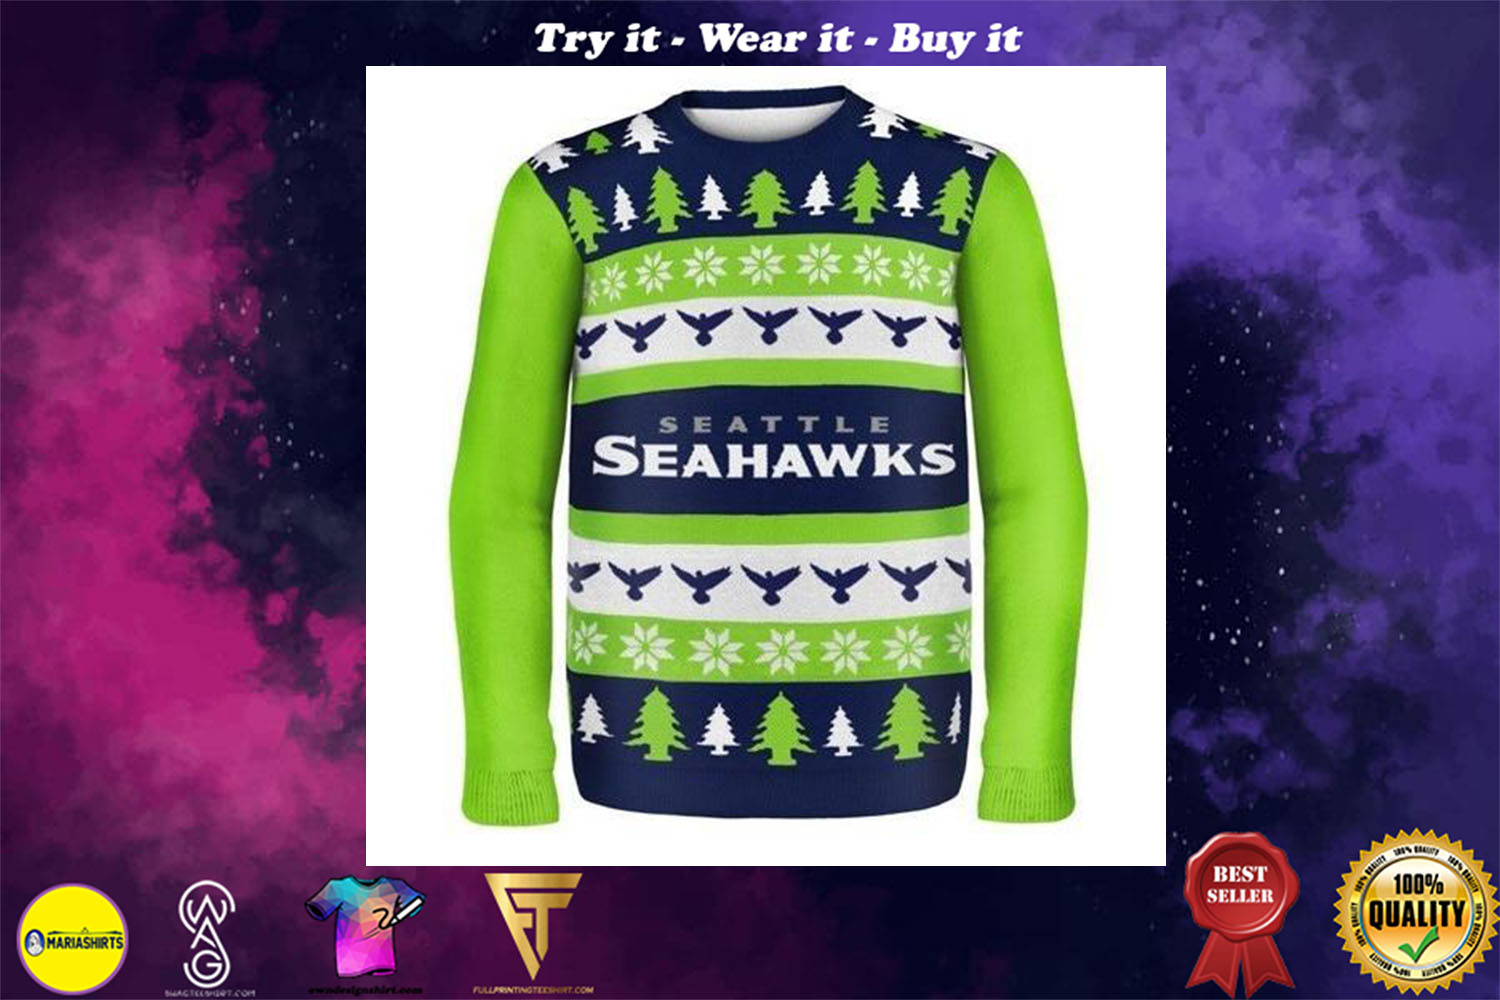 [special edition] seattle seahawks ugly christmas sweater - maria